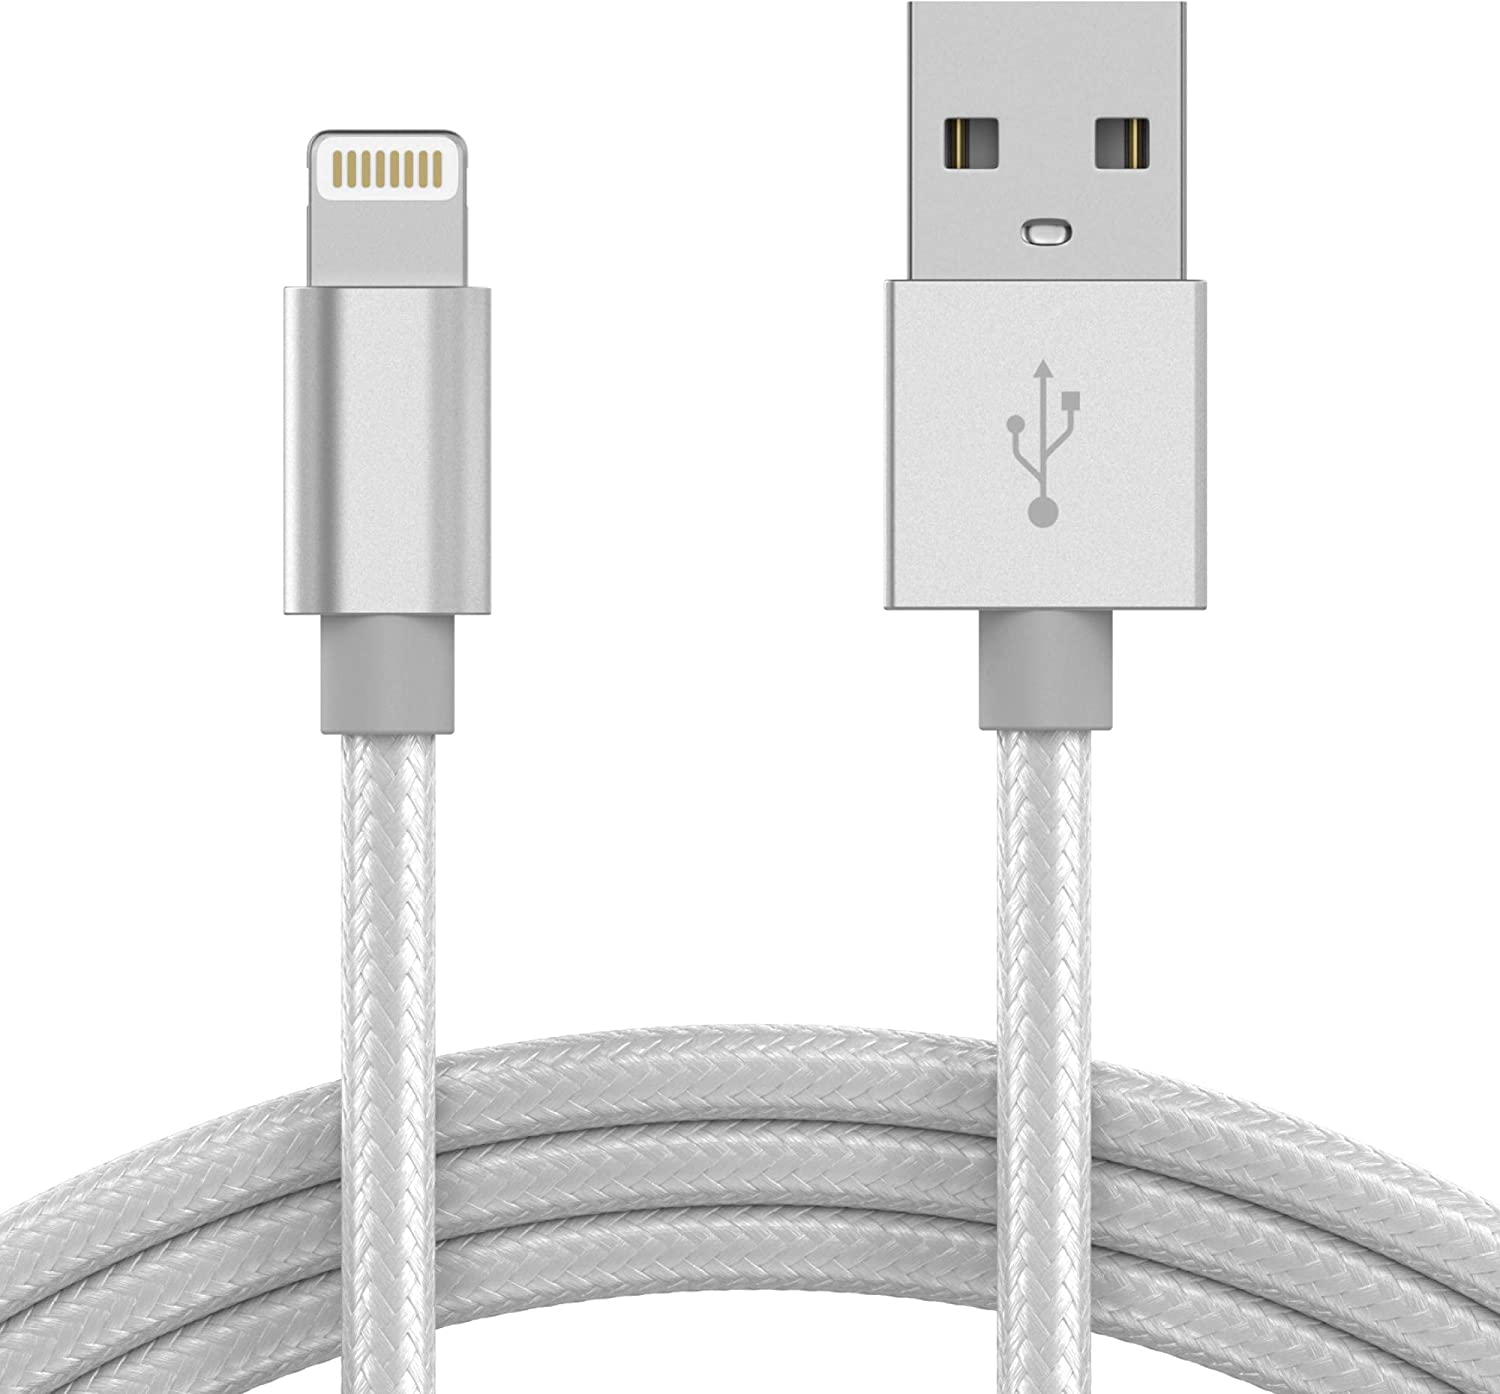 TalkWorks iPhone Charger Lightning Cable 10ft Long Braided Heavy Duty Cord MFI Certified for Apple iPhone 12, 12 Pro/Max, 12 Mini, 11, 11 Pro/Max, XR, XS/Max, X, 8, 7, 6, 5, SE, iPad - Silver